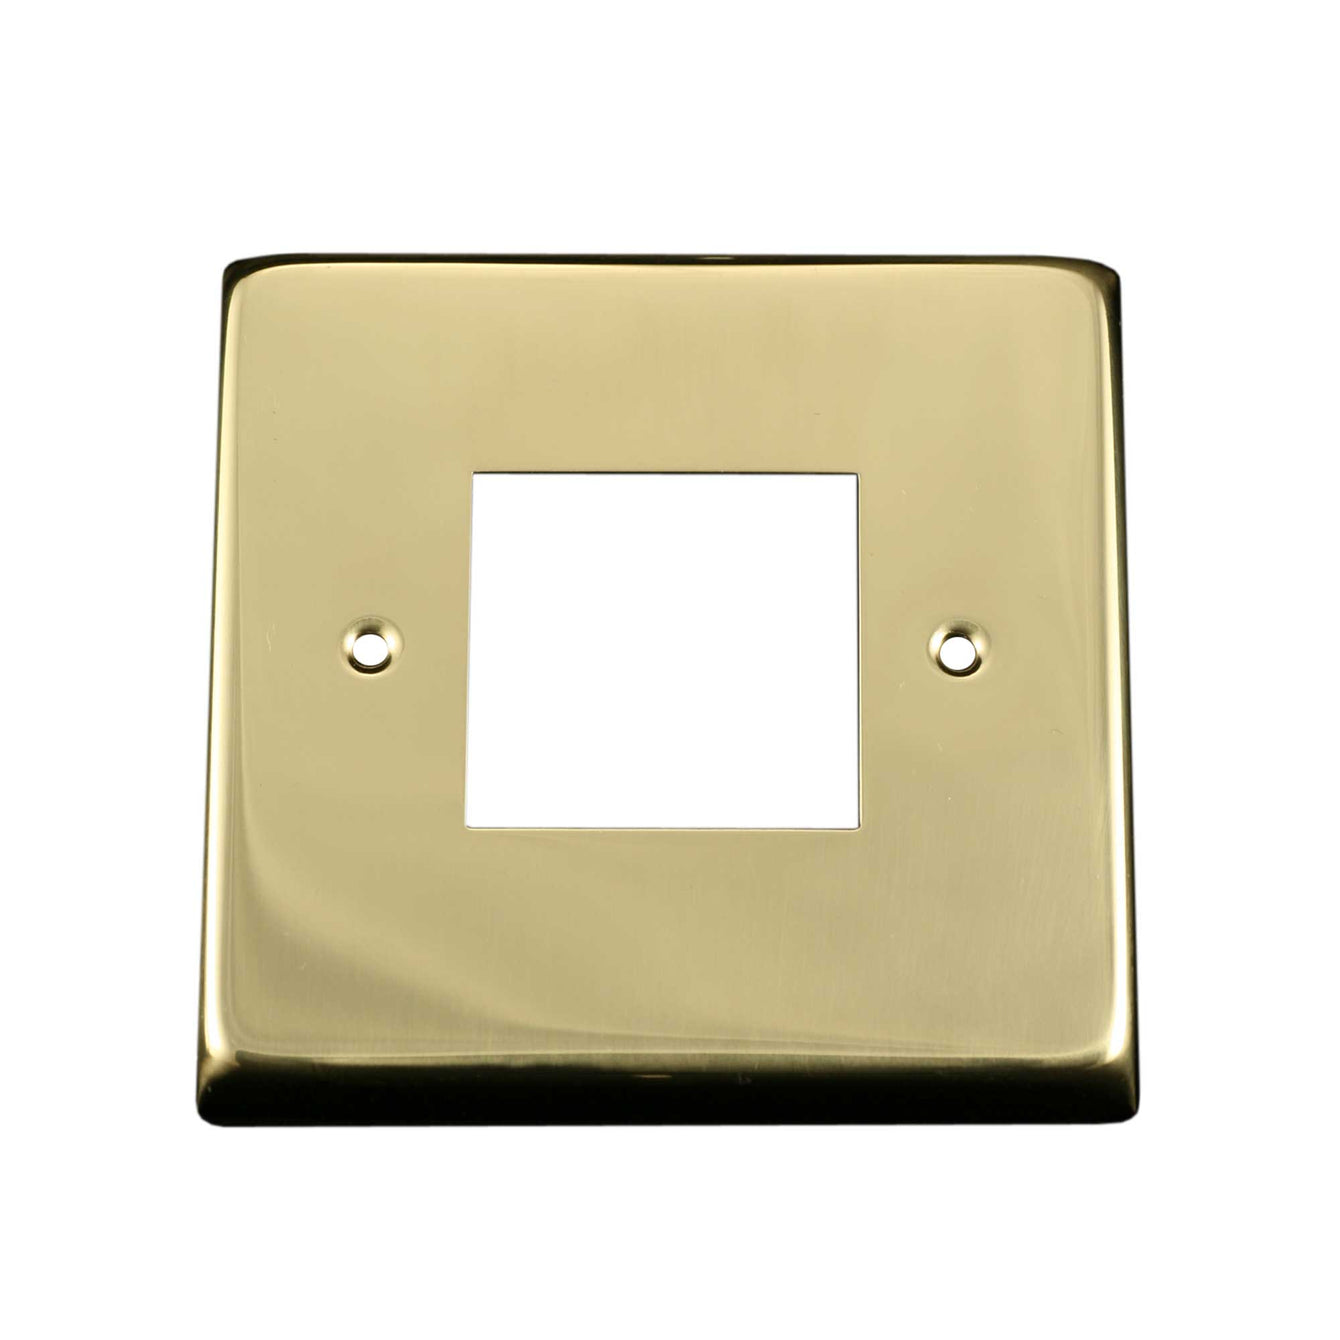 ElekTek Light Switch Conversion Cover Plate Double Victorian Antique Brass